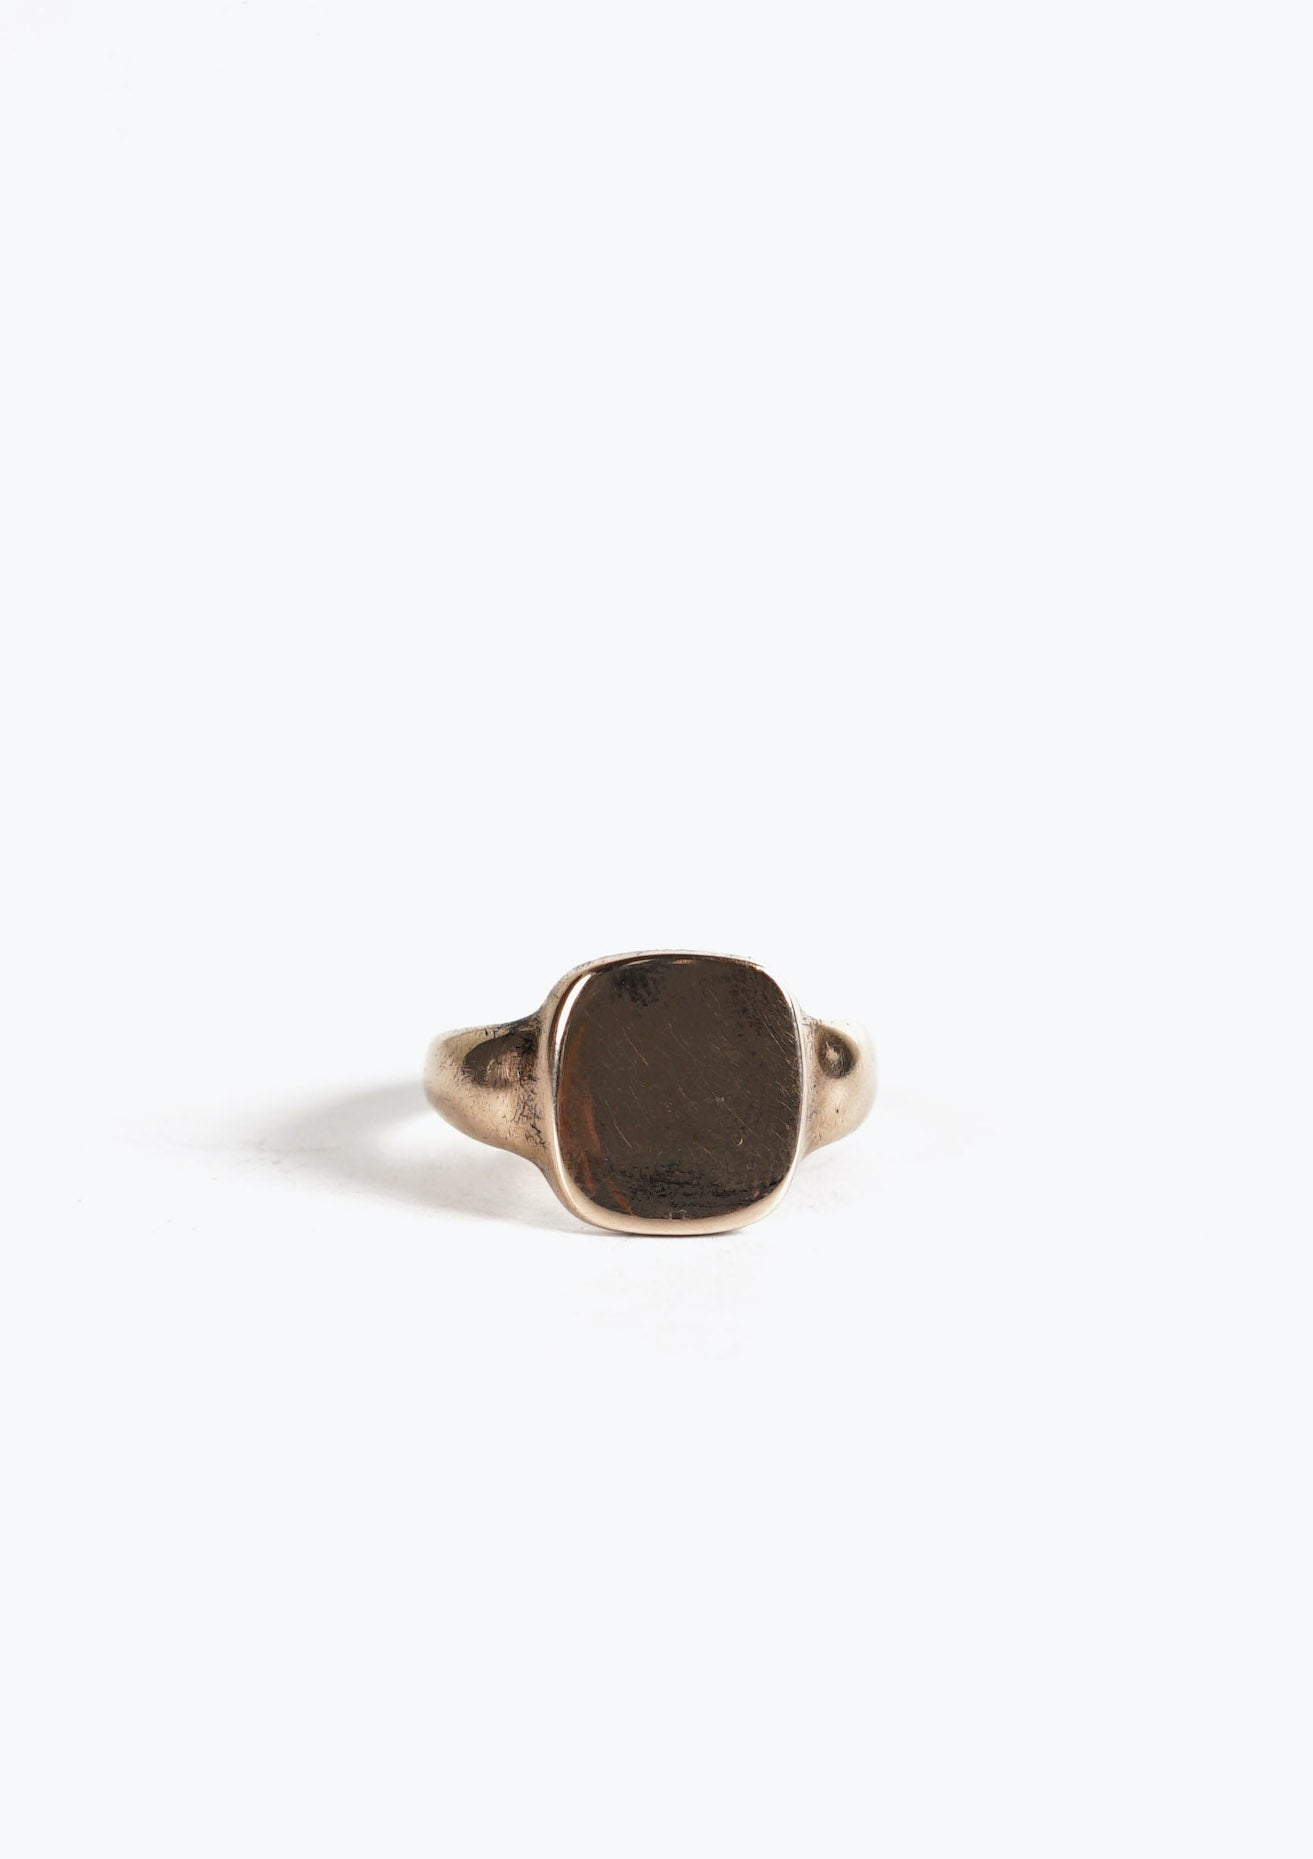 <strong>VINTAGE</strong></br>English Gold Signet Ring